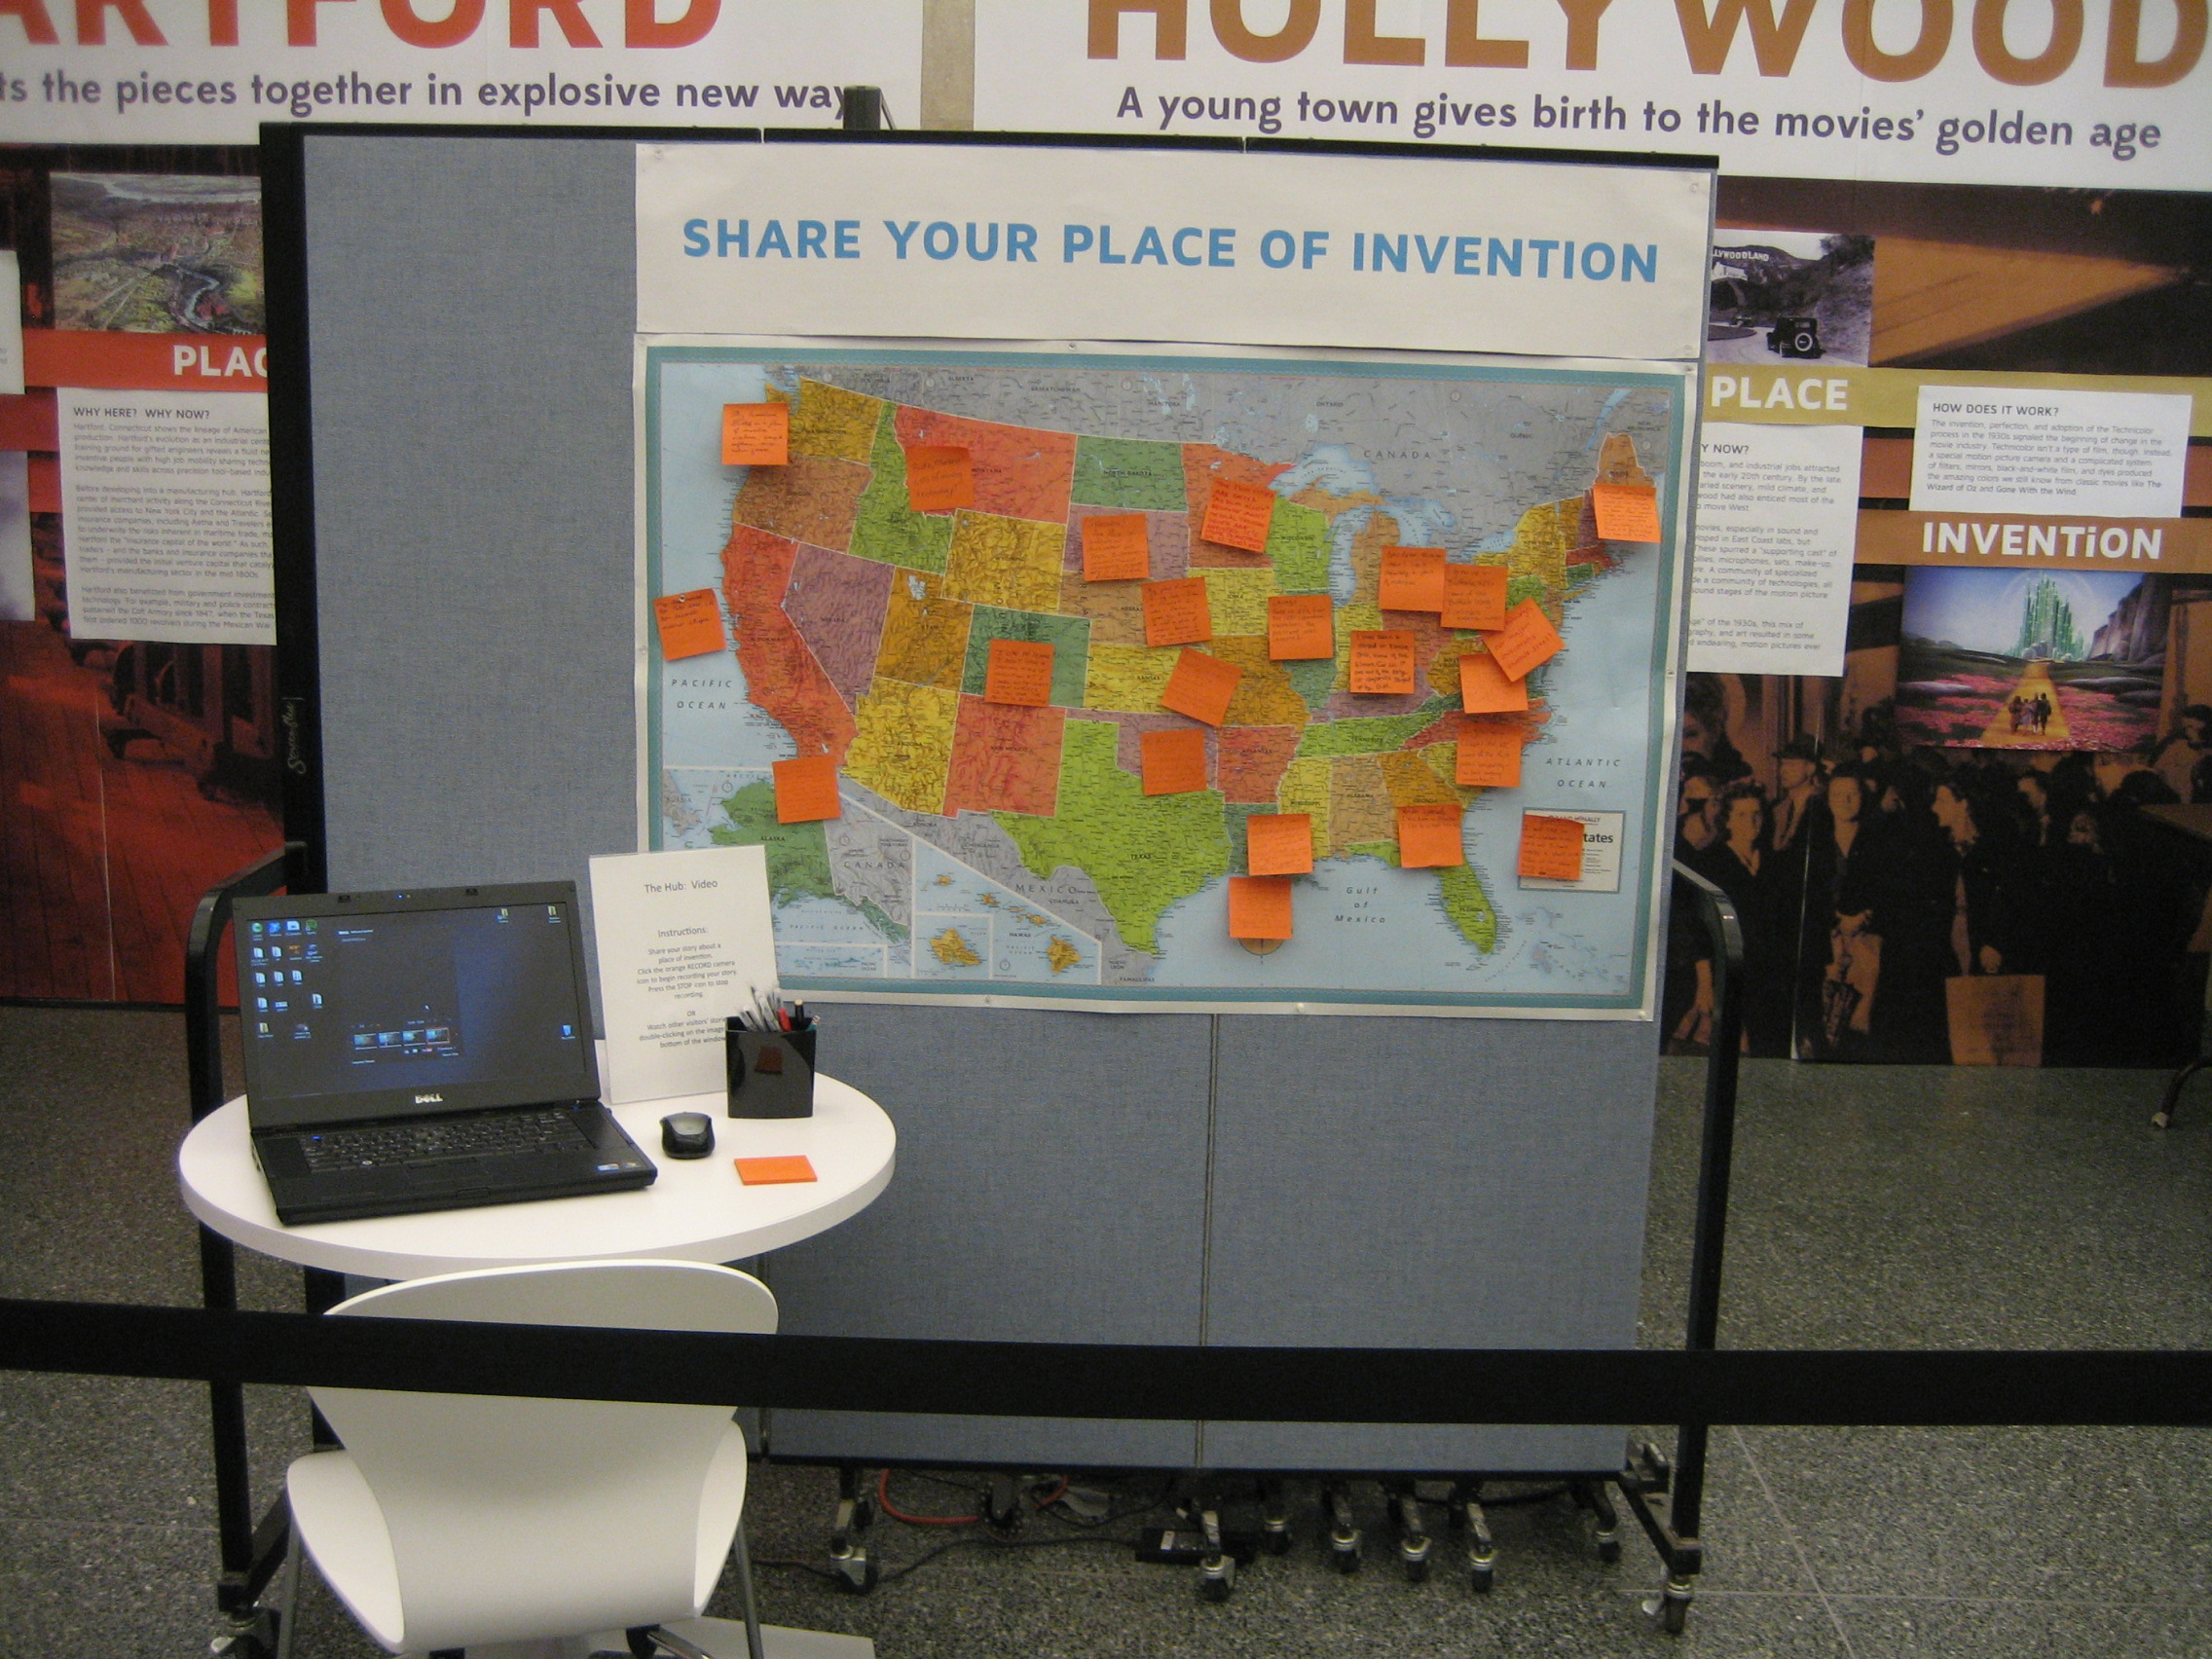 On the interactive map, we asked visitors to leave stories about their places of invention, either through Post-Its or videos.